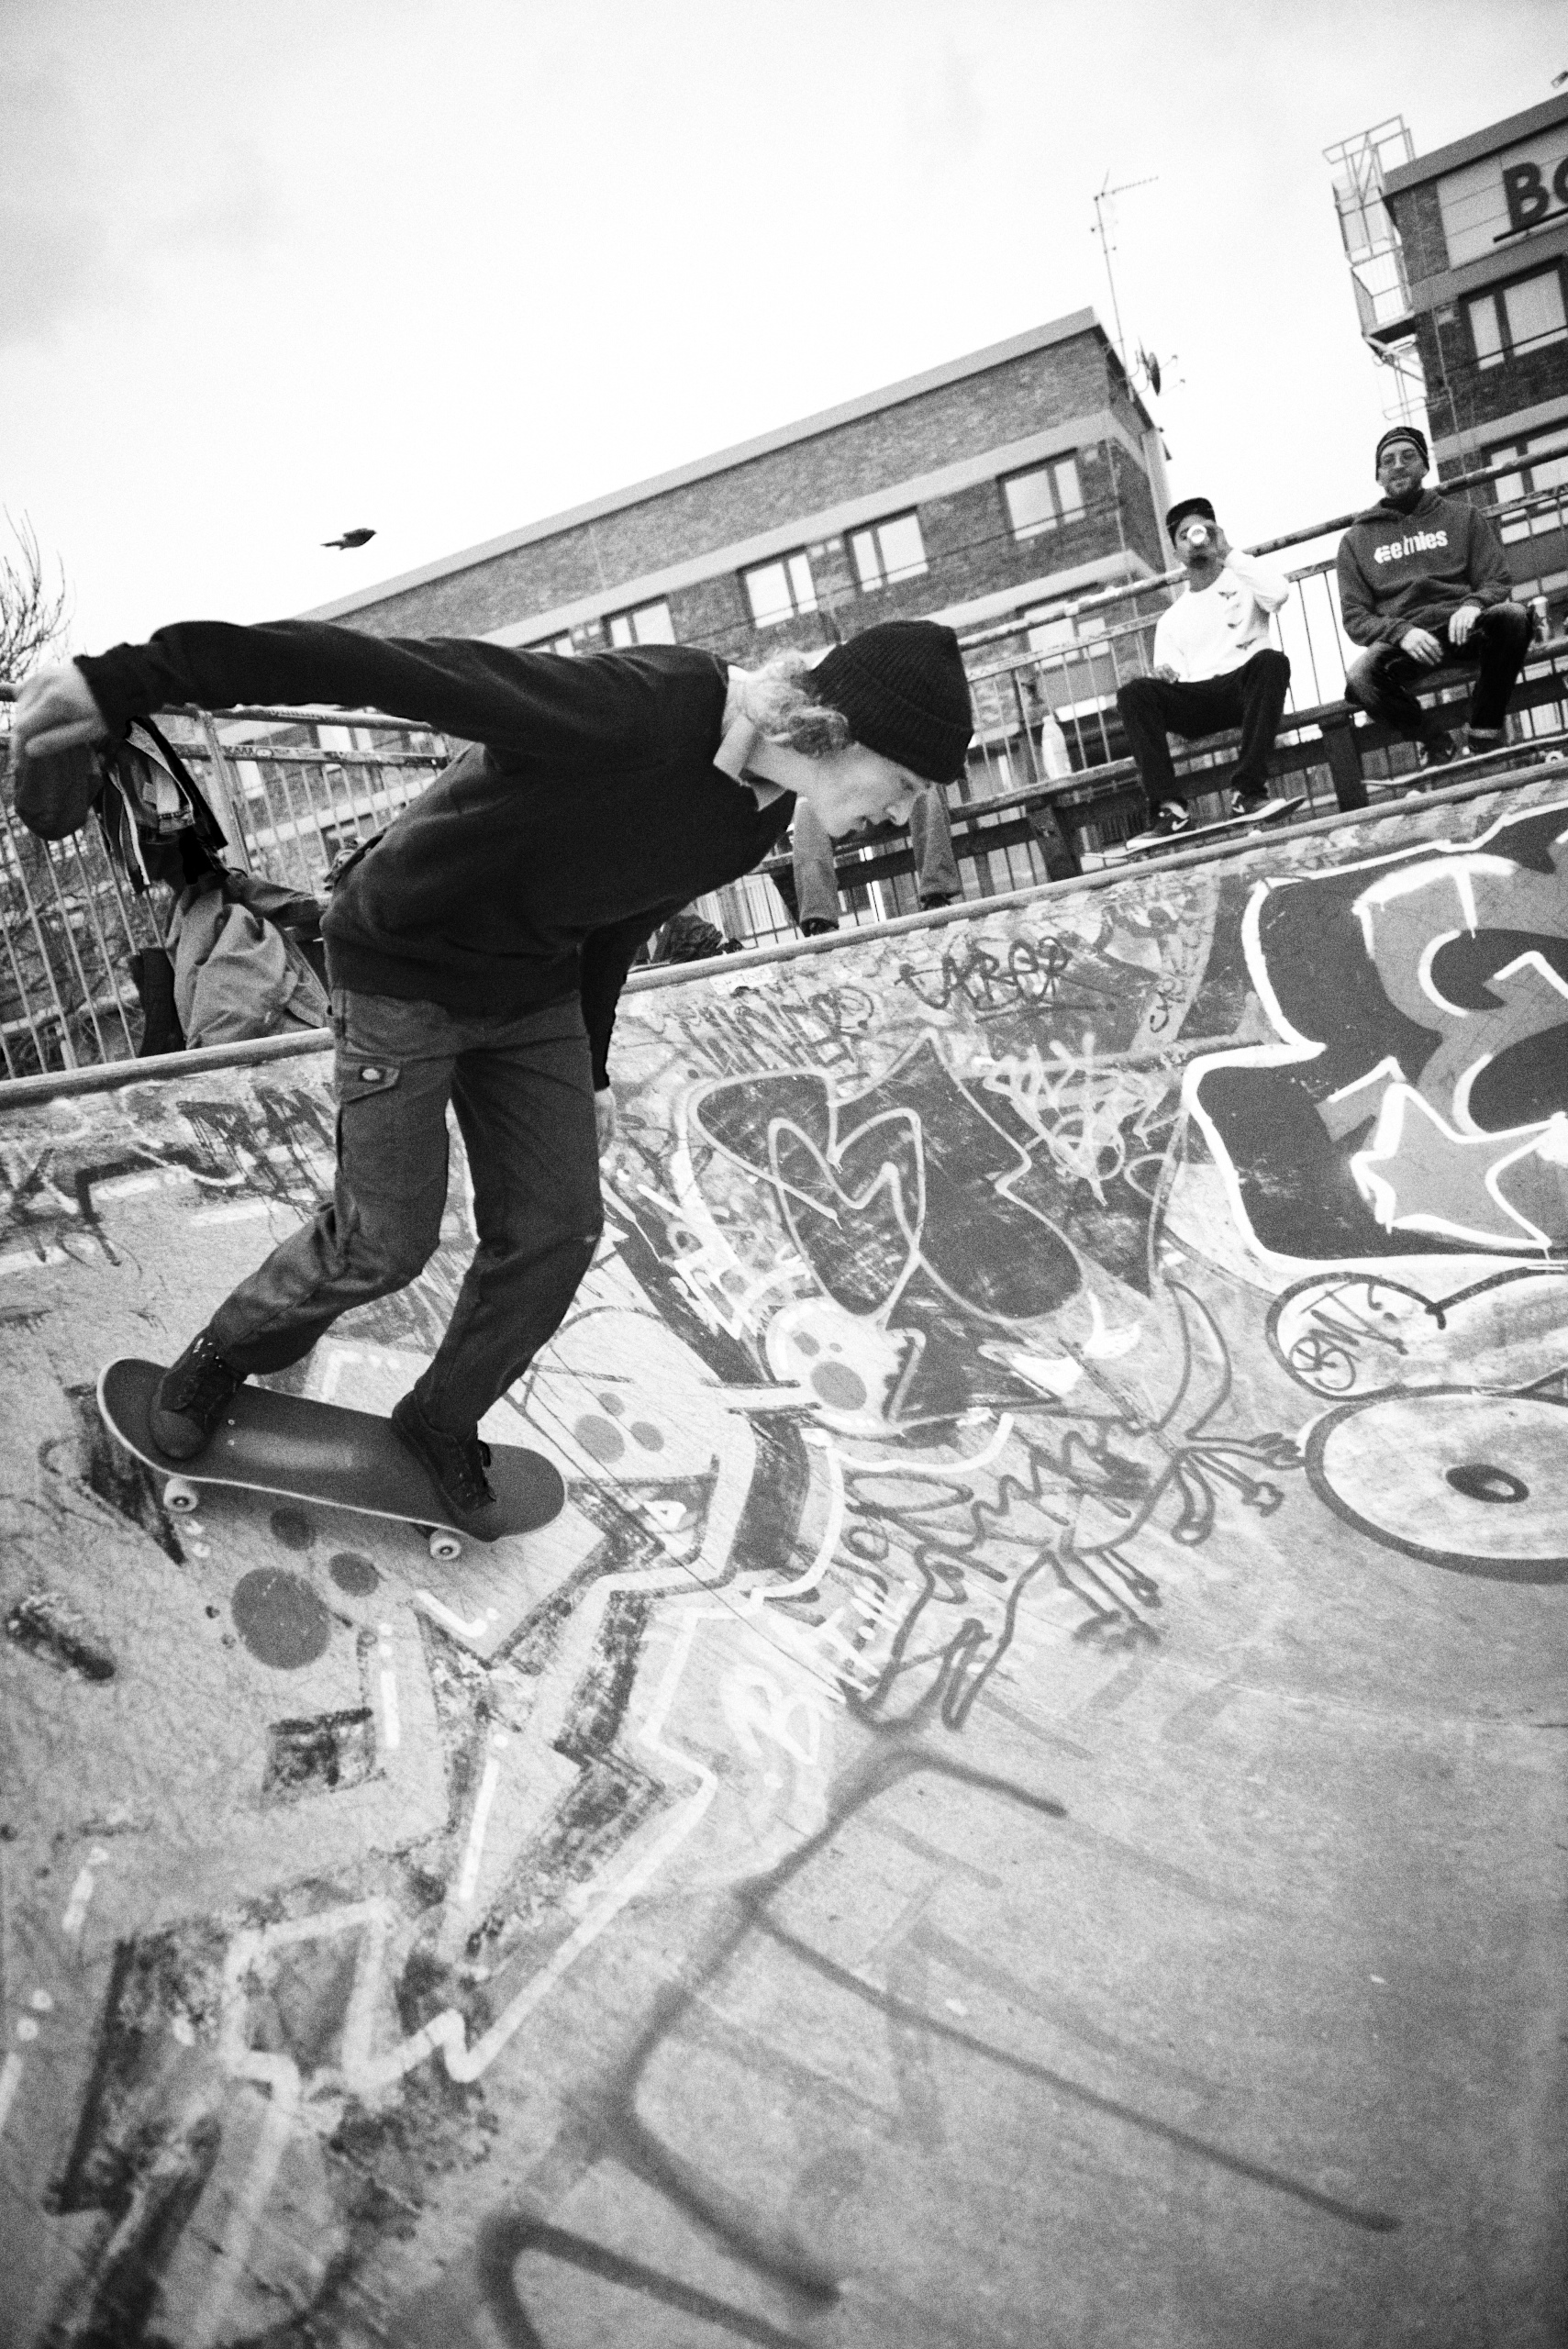 Brixton-skate-park-Matt-Stansfield-Lifestyle-Youth-Culture_9